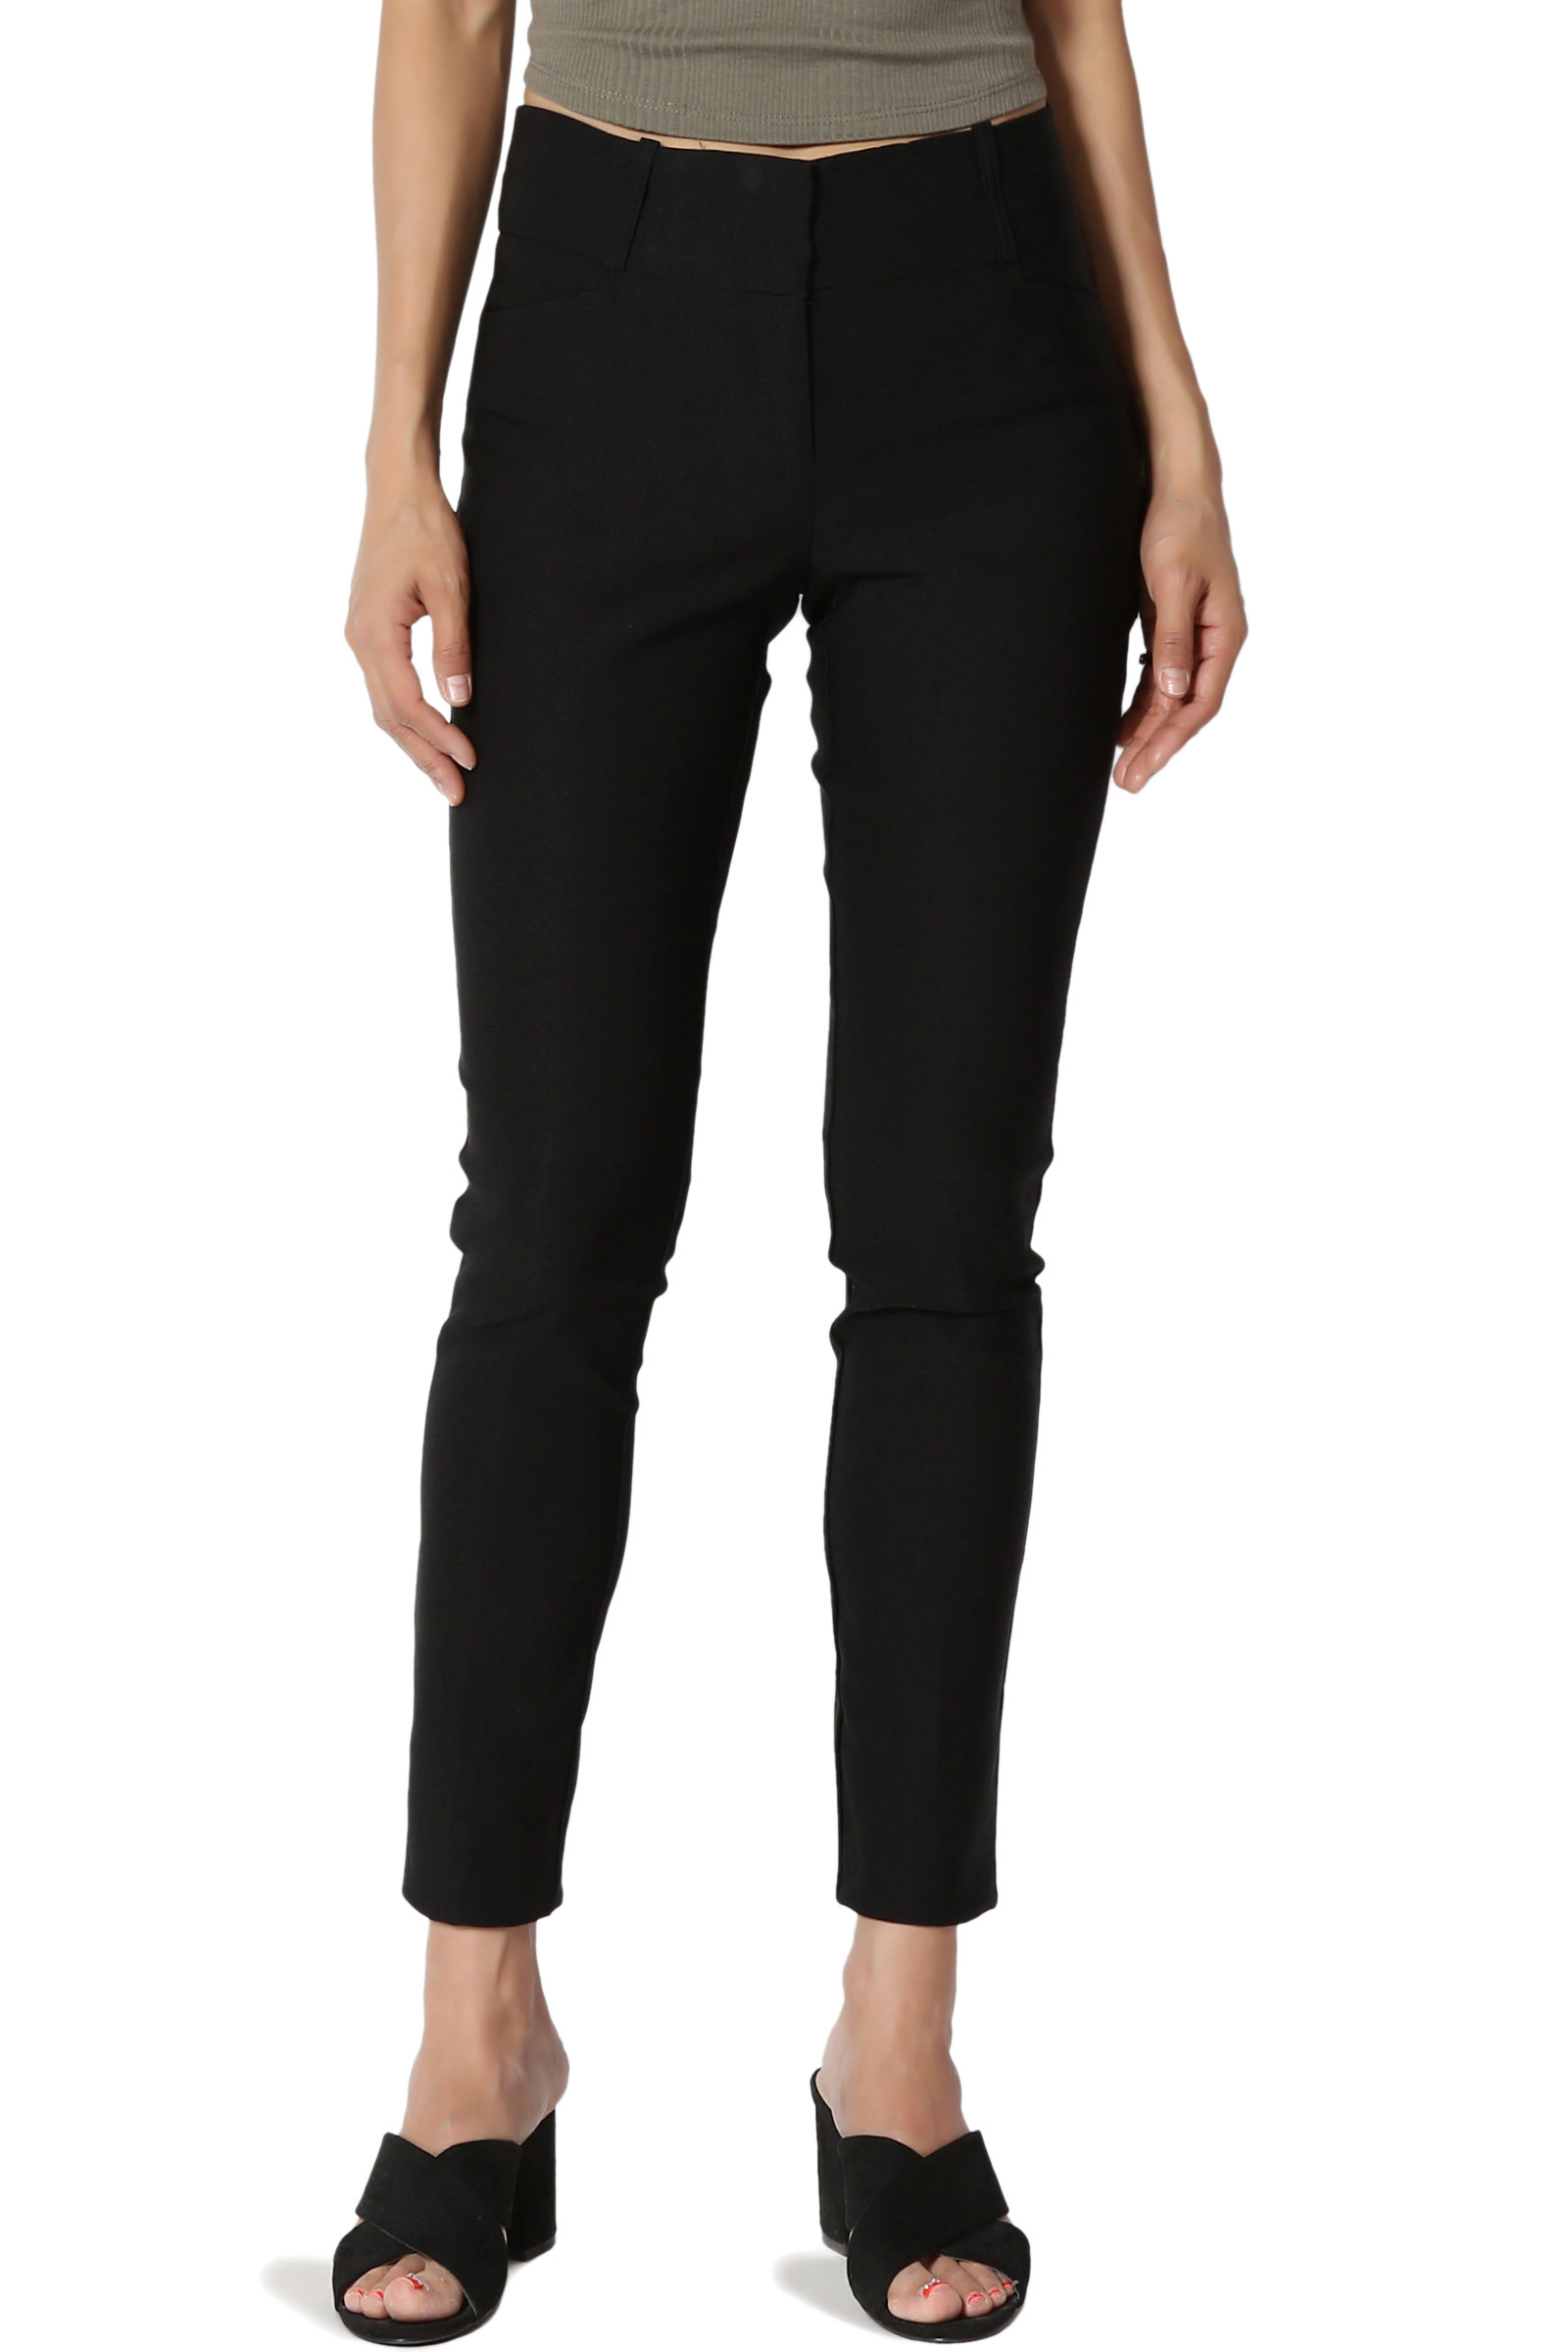 TheMogan Women's Millennium Stretch Ankle Crop Skinny Trouser Pants Work Or Play